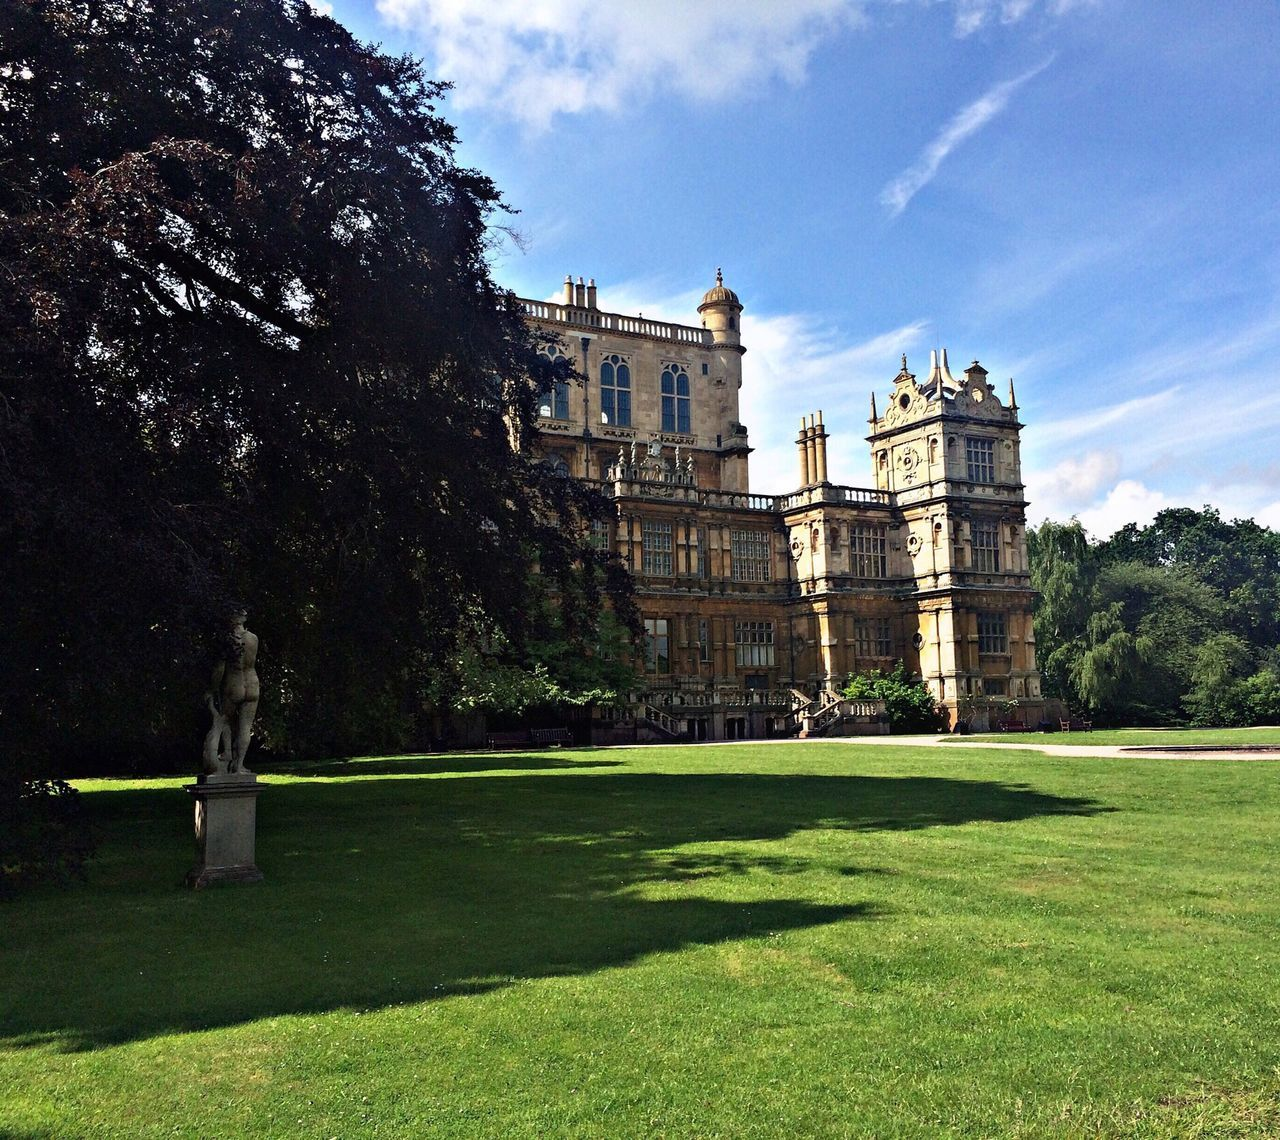 A shot of Wollaton hall I took very recently 🤓🤓🏰🏰🏰 Wollaton Hall Deer Park Castle Nottingham Sunny Beautiful IPhone Iphone6 July 2016 EyeEm Best Shots 2016 EyeEm Awards Eye4photography  EyeEm Gallery EyeEmBestPics EyeEm Masterclass